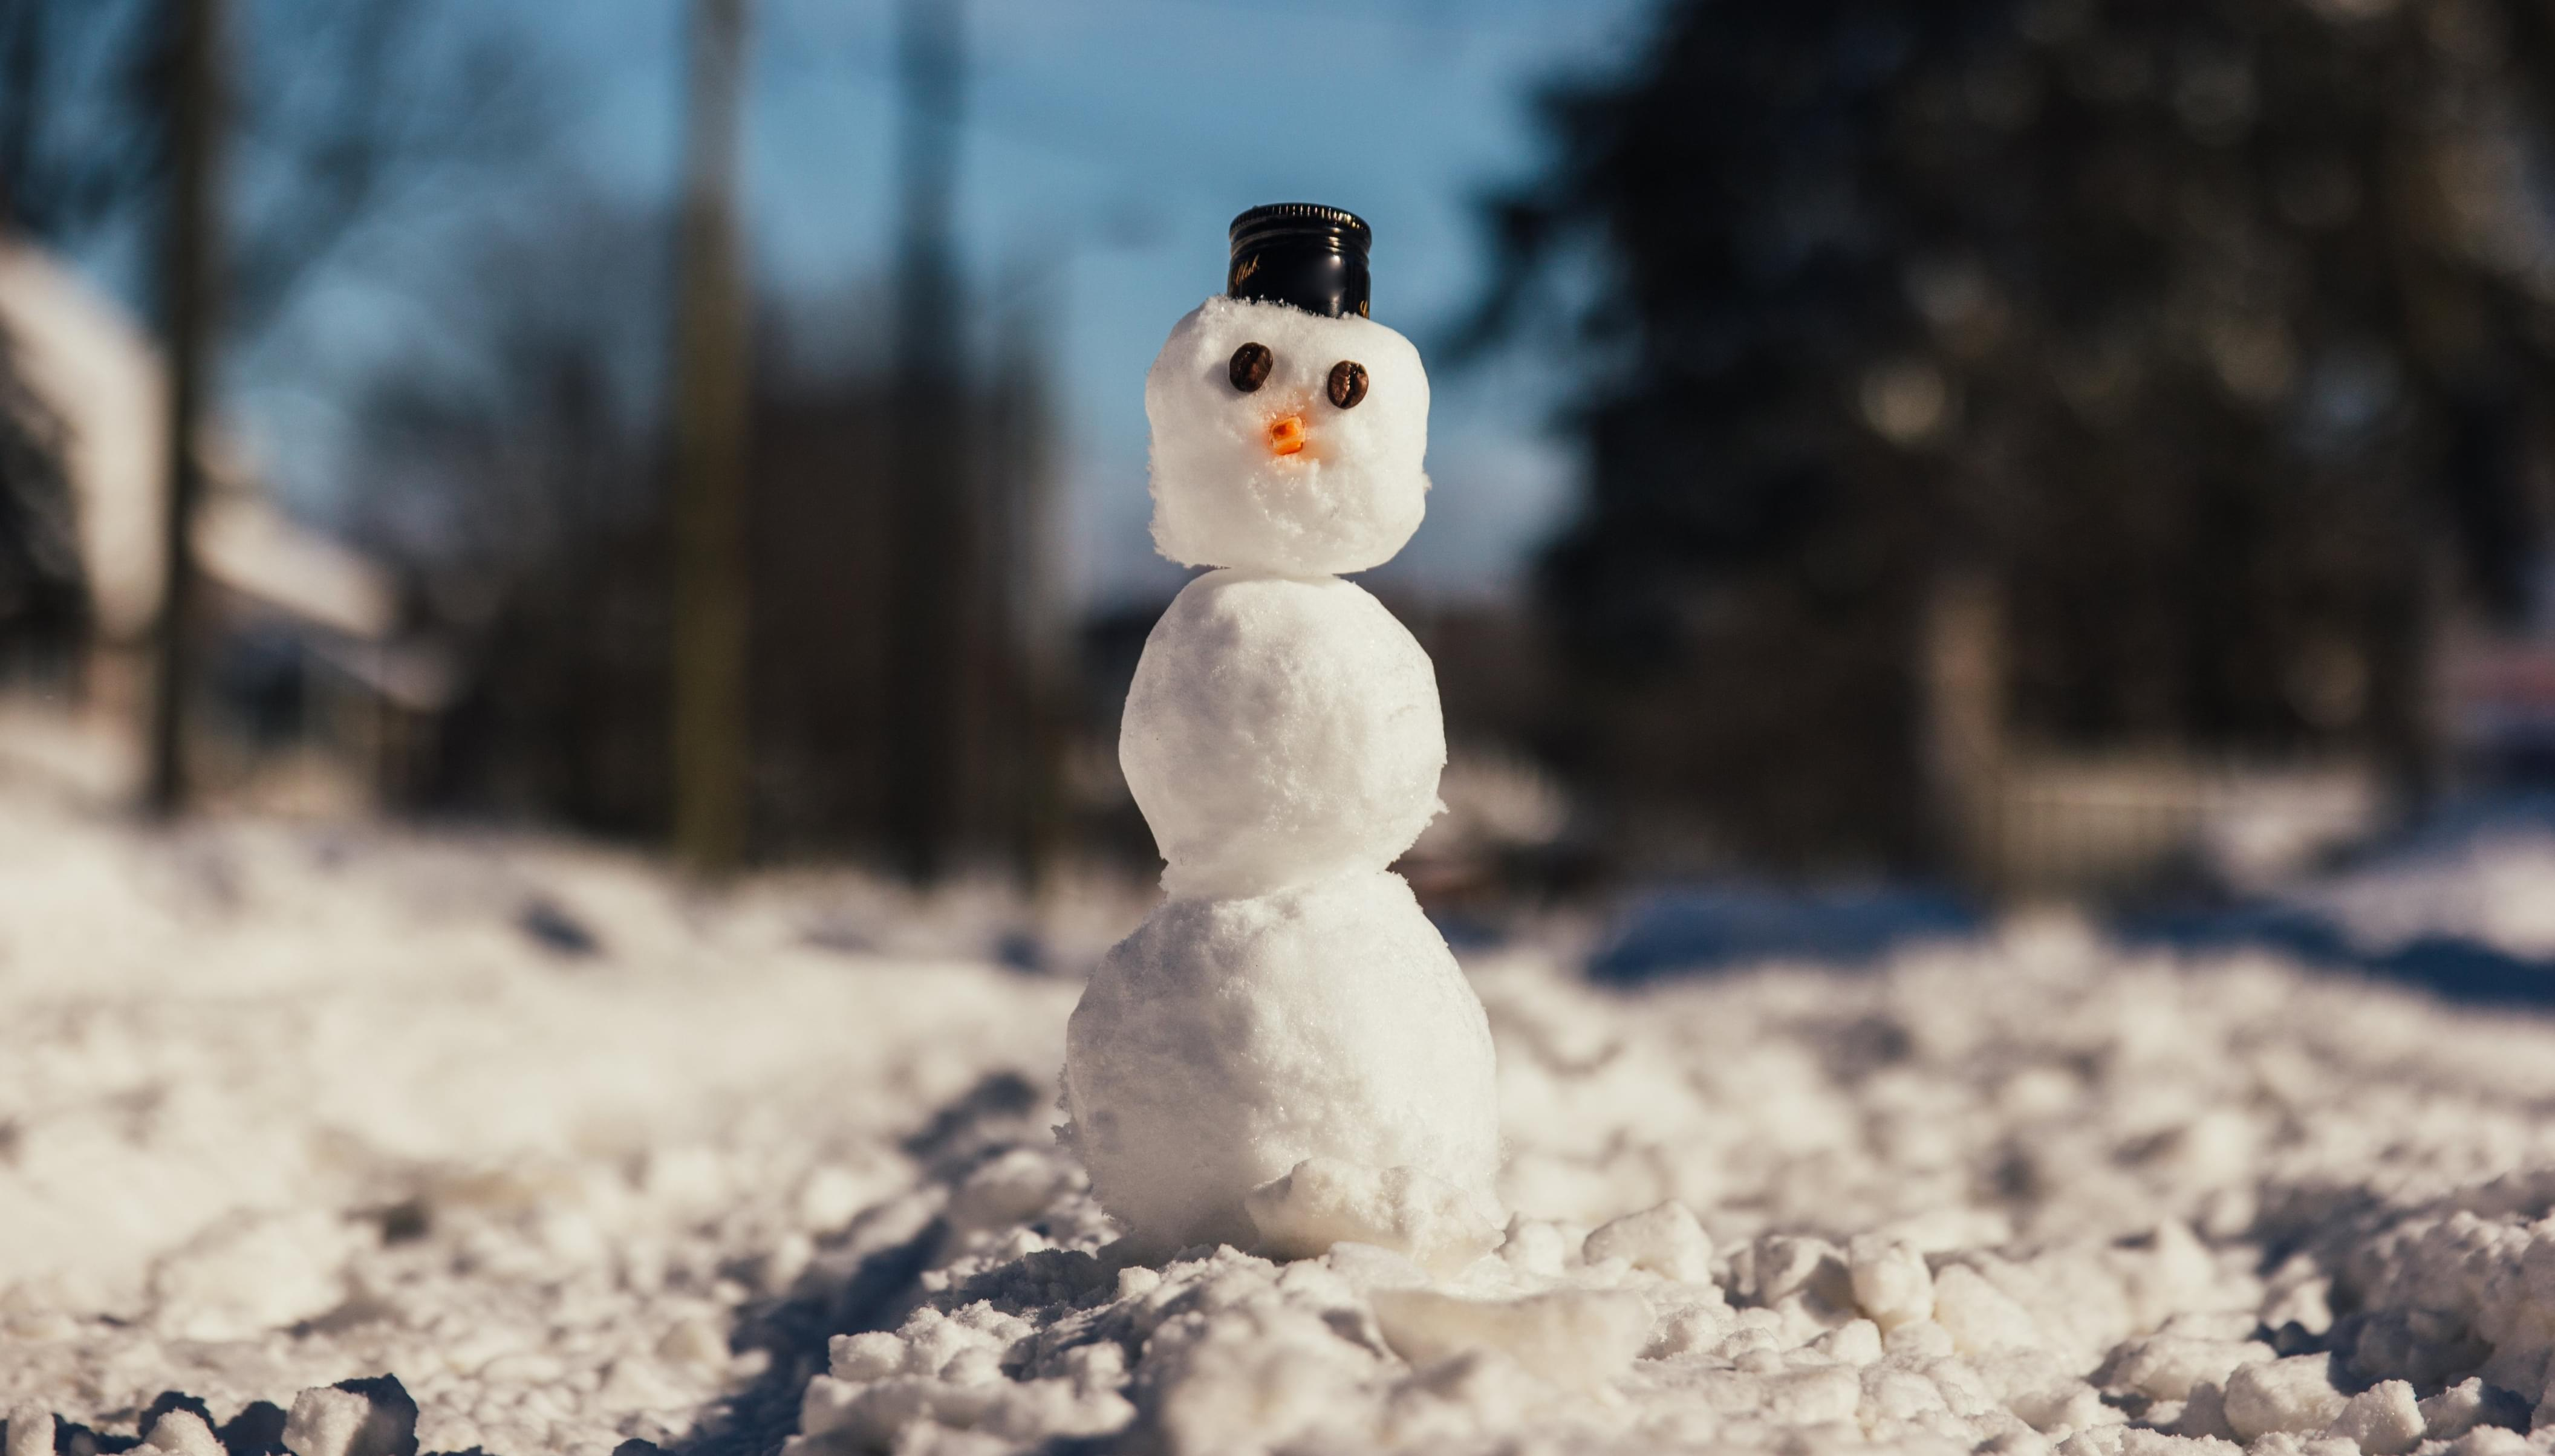 Town Gets Off on Creating NSFW Snowmen